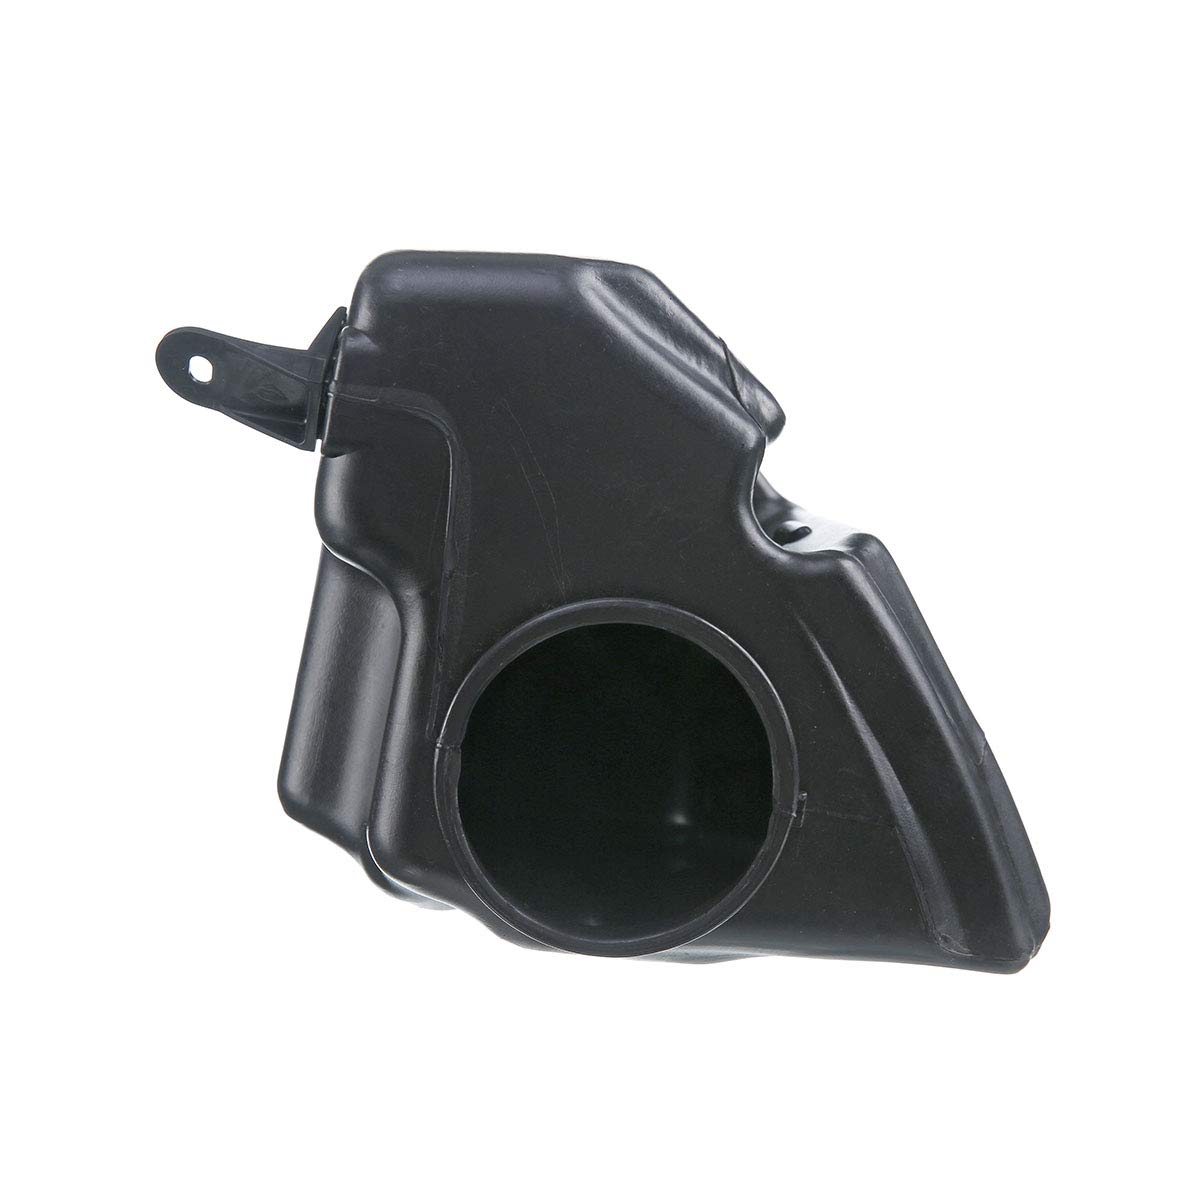 A-Premium Windshield Washer Reservoir Tank for Mercedes-Benz C216 CL550 W221 S350 S400 S550 S63 AMG S65 AMG